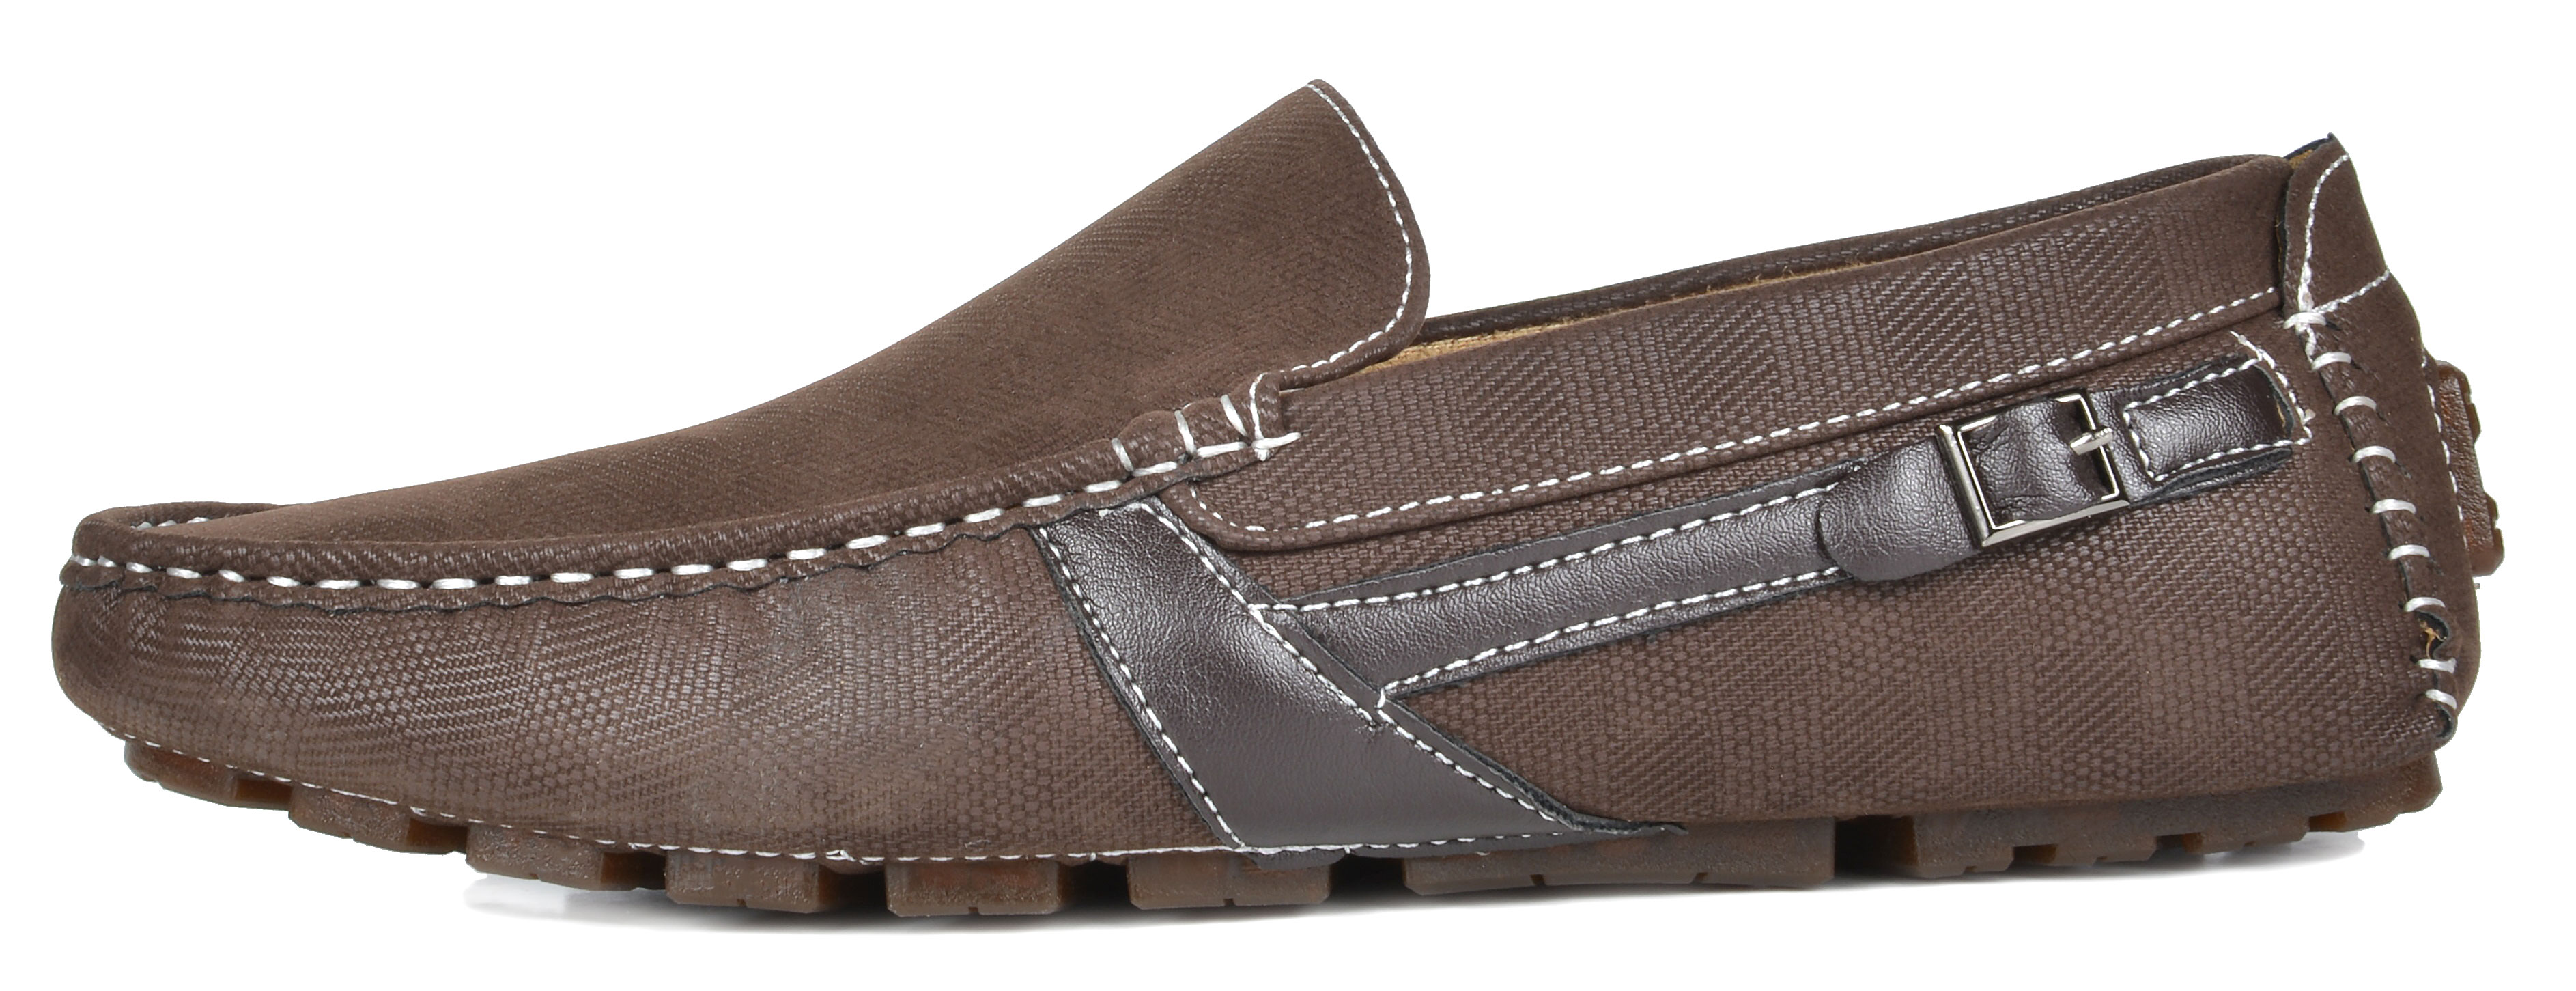 Bruno-Marc-Men-039-s-New-Classic-Fashion-Slip-on-Driving-Casual-Loafers-Boat-Shoes thumbnail 115